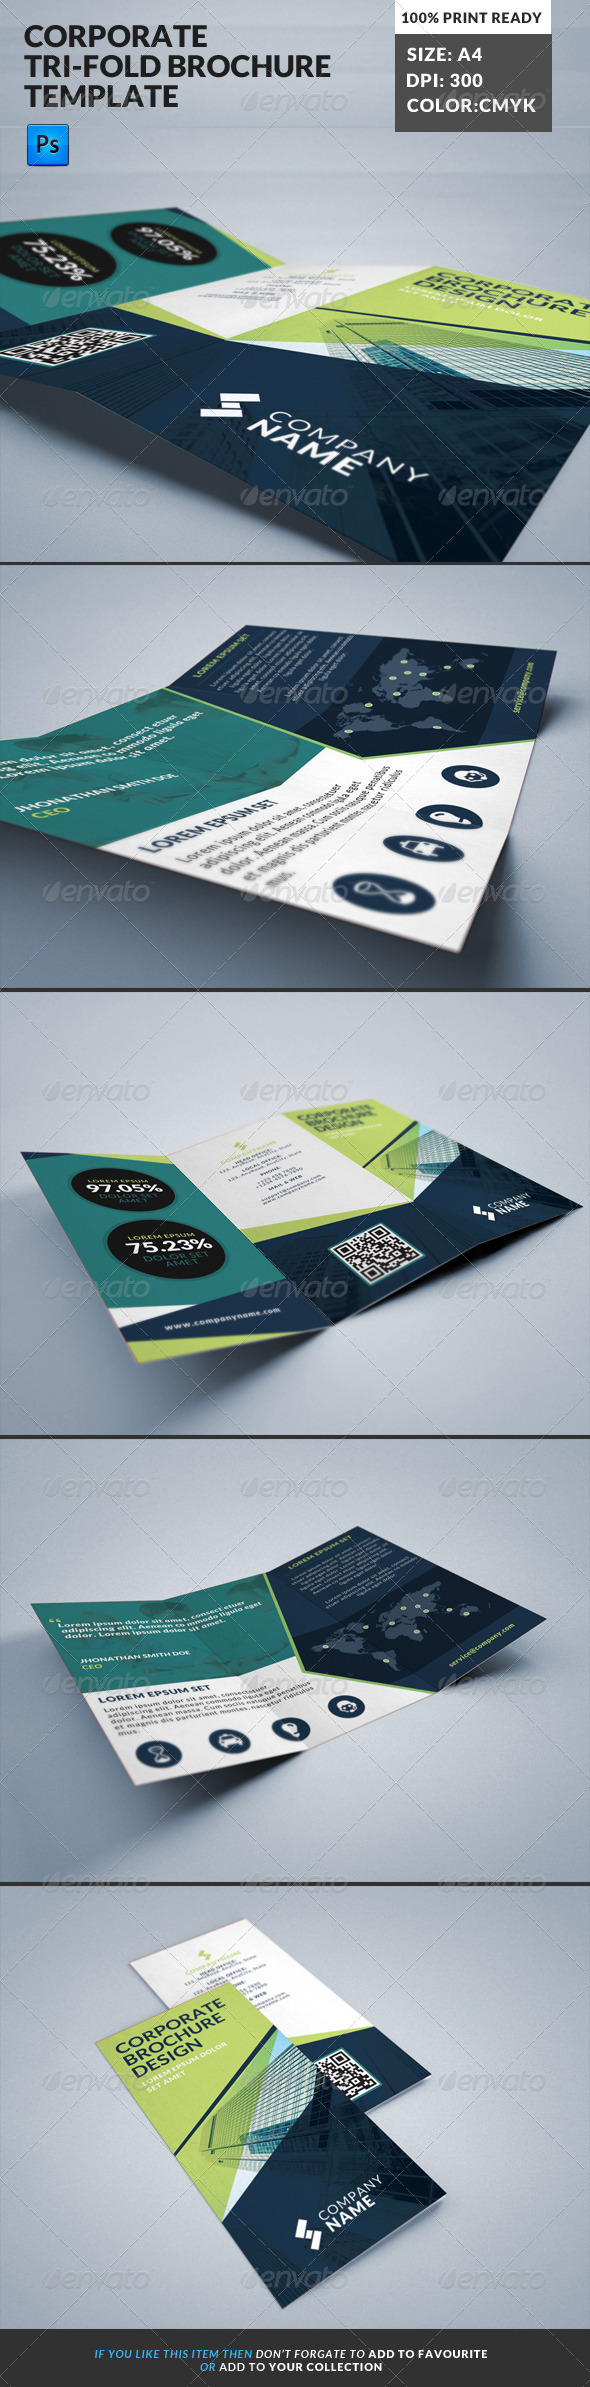 GraphicRiver Corporate Tri-Fold Brochures Template 10 8098084